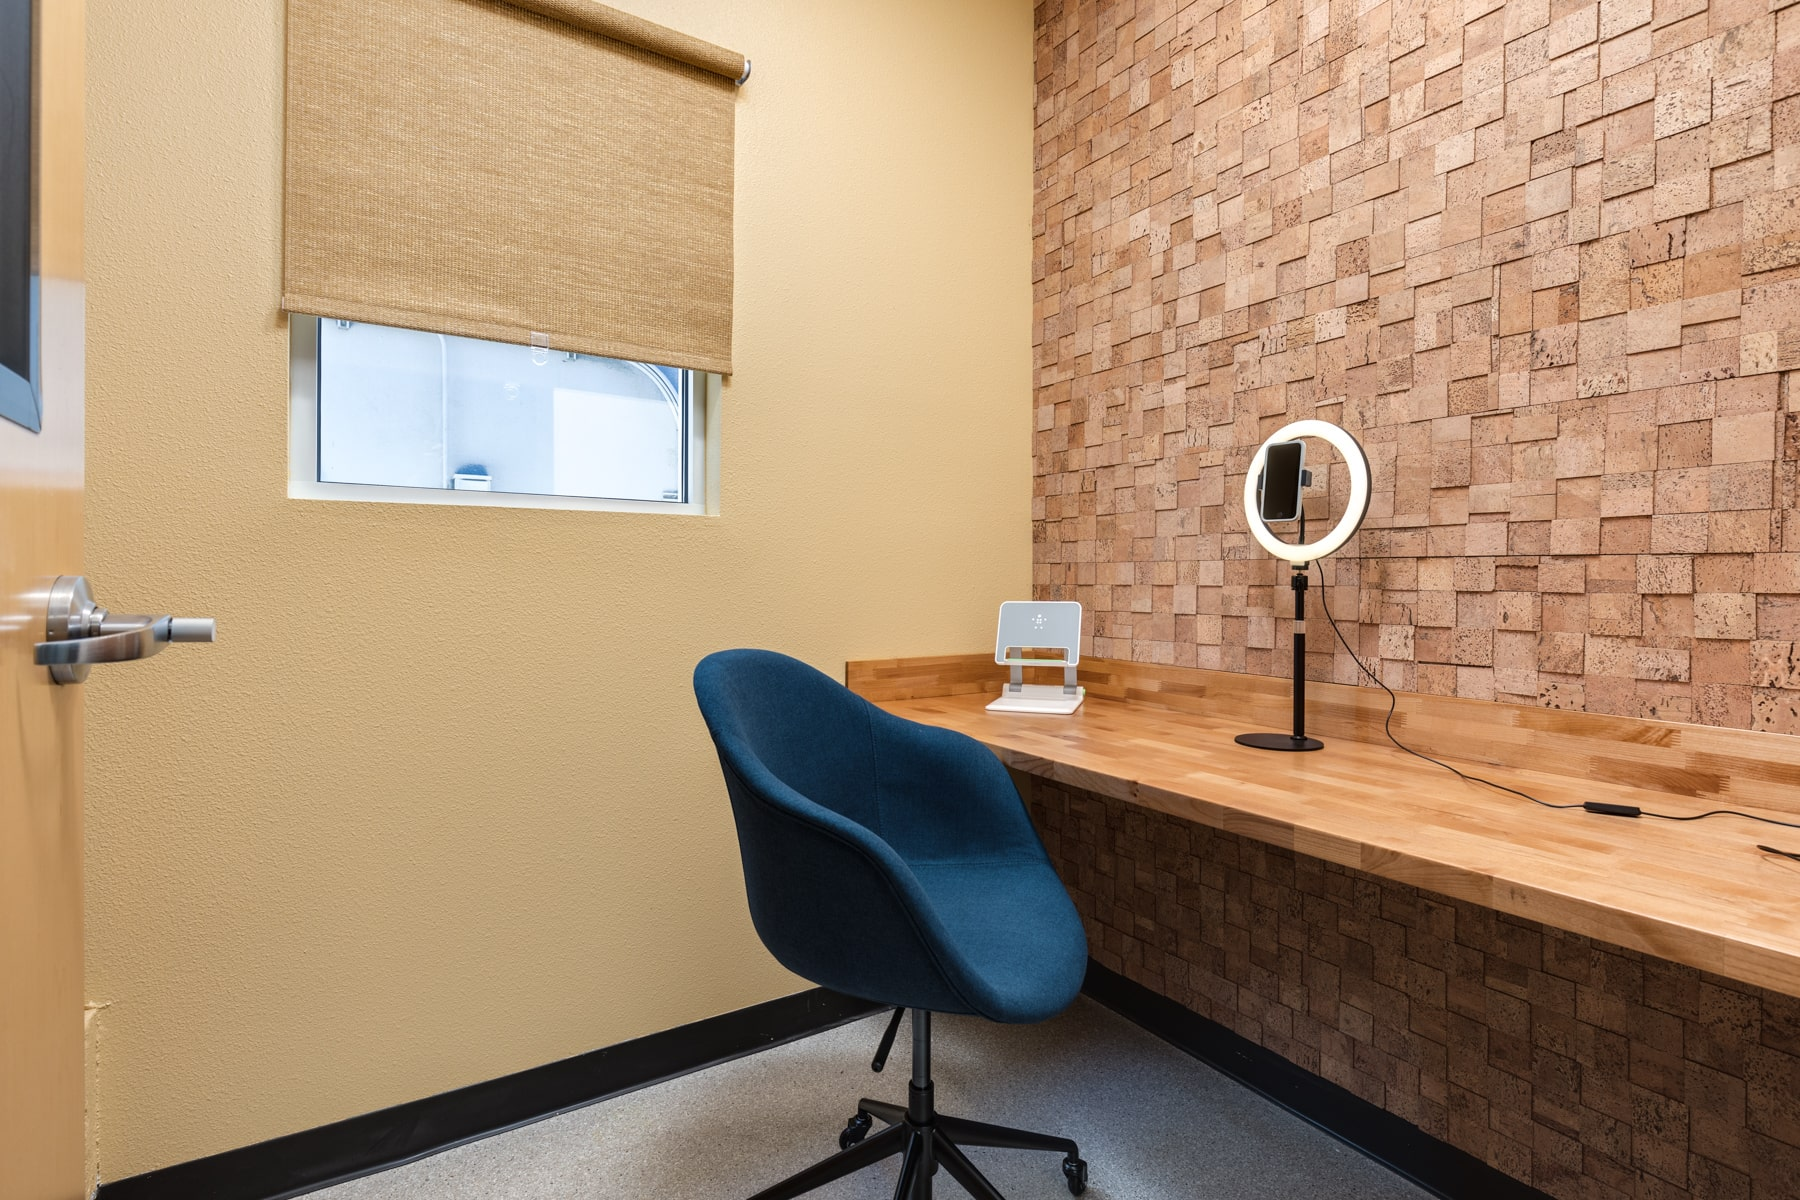 A small room designed to be used as a phone booth. Includes a ring light, laptop stand, and comfortable blue chair.